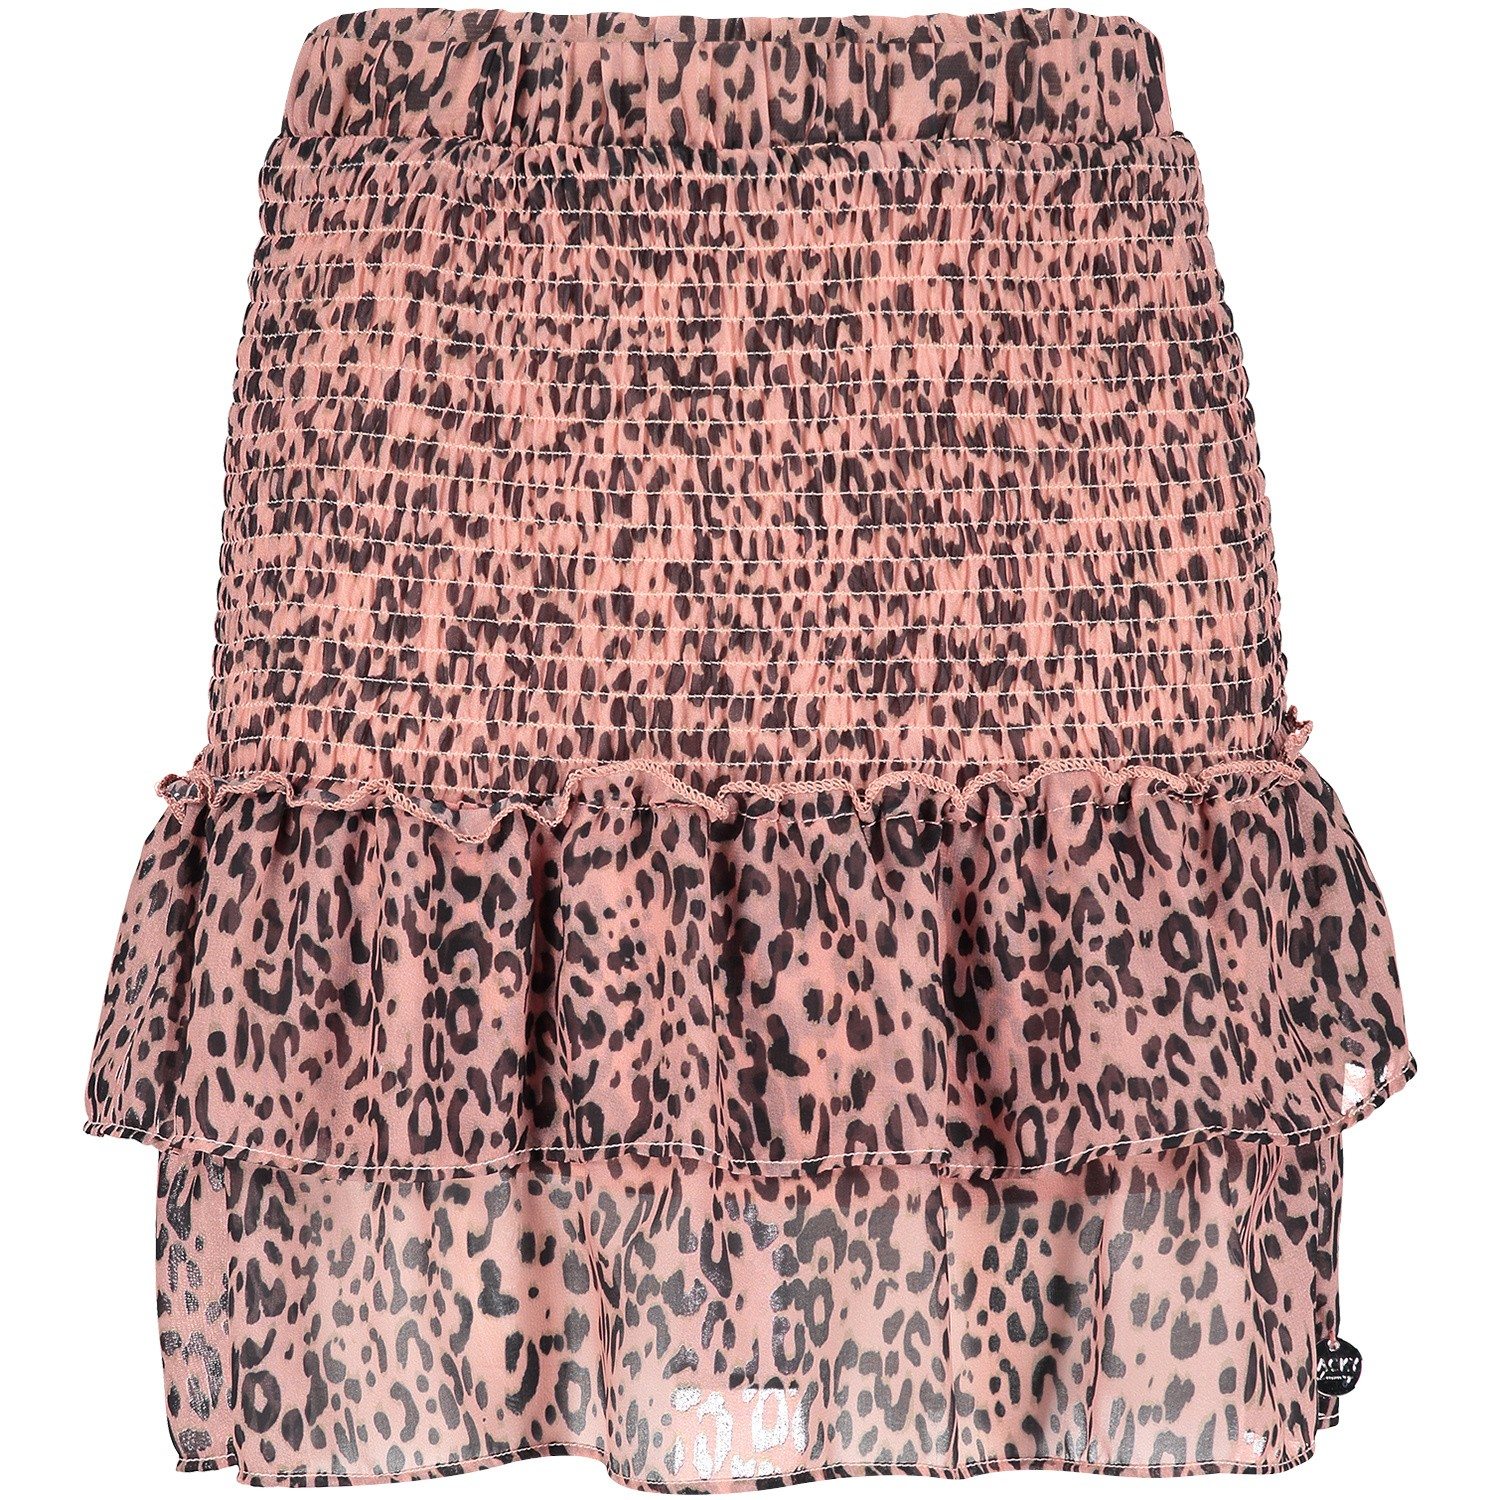 Picture of Jacky Girls JGSS19067 kids skirt pink